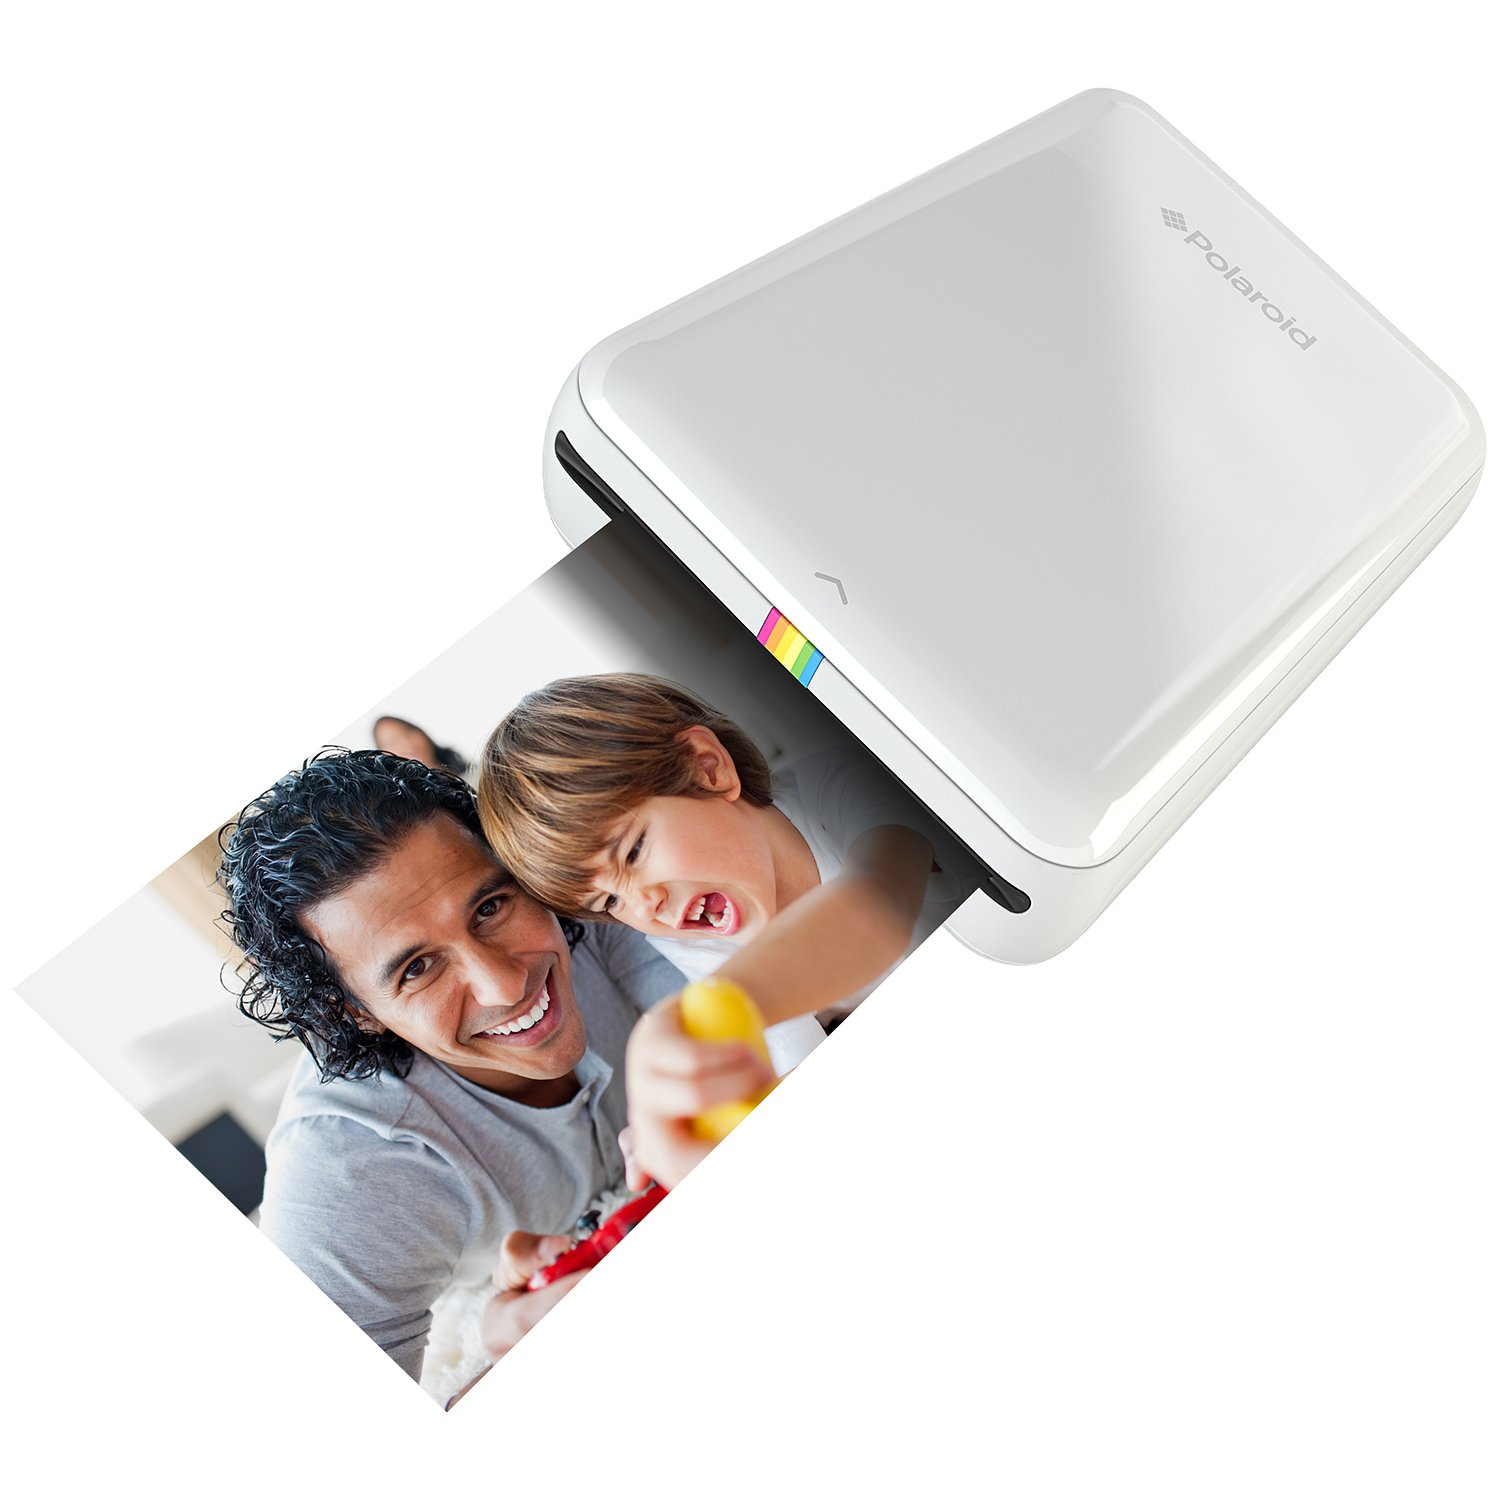 Polaroid ZIP Mobile Printer w/ZINK Zero Ink Printing Technology - Compatible w/iOS & Android Devices - White by Polaroid